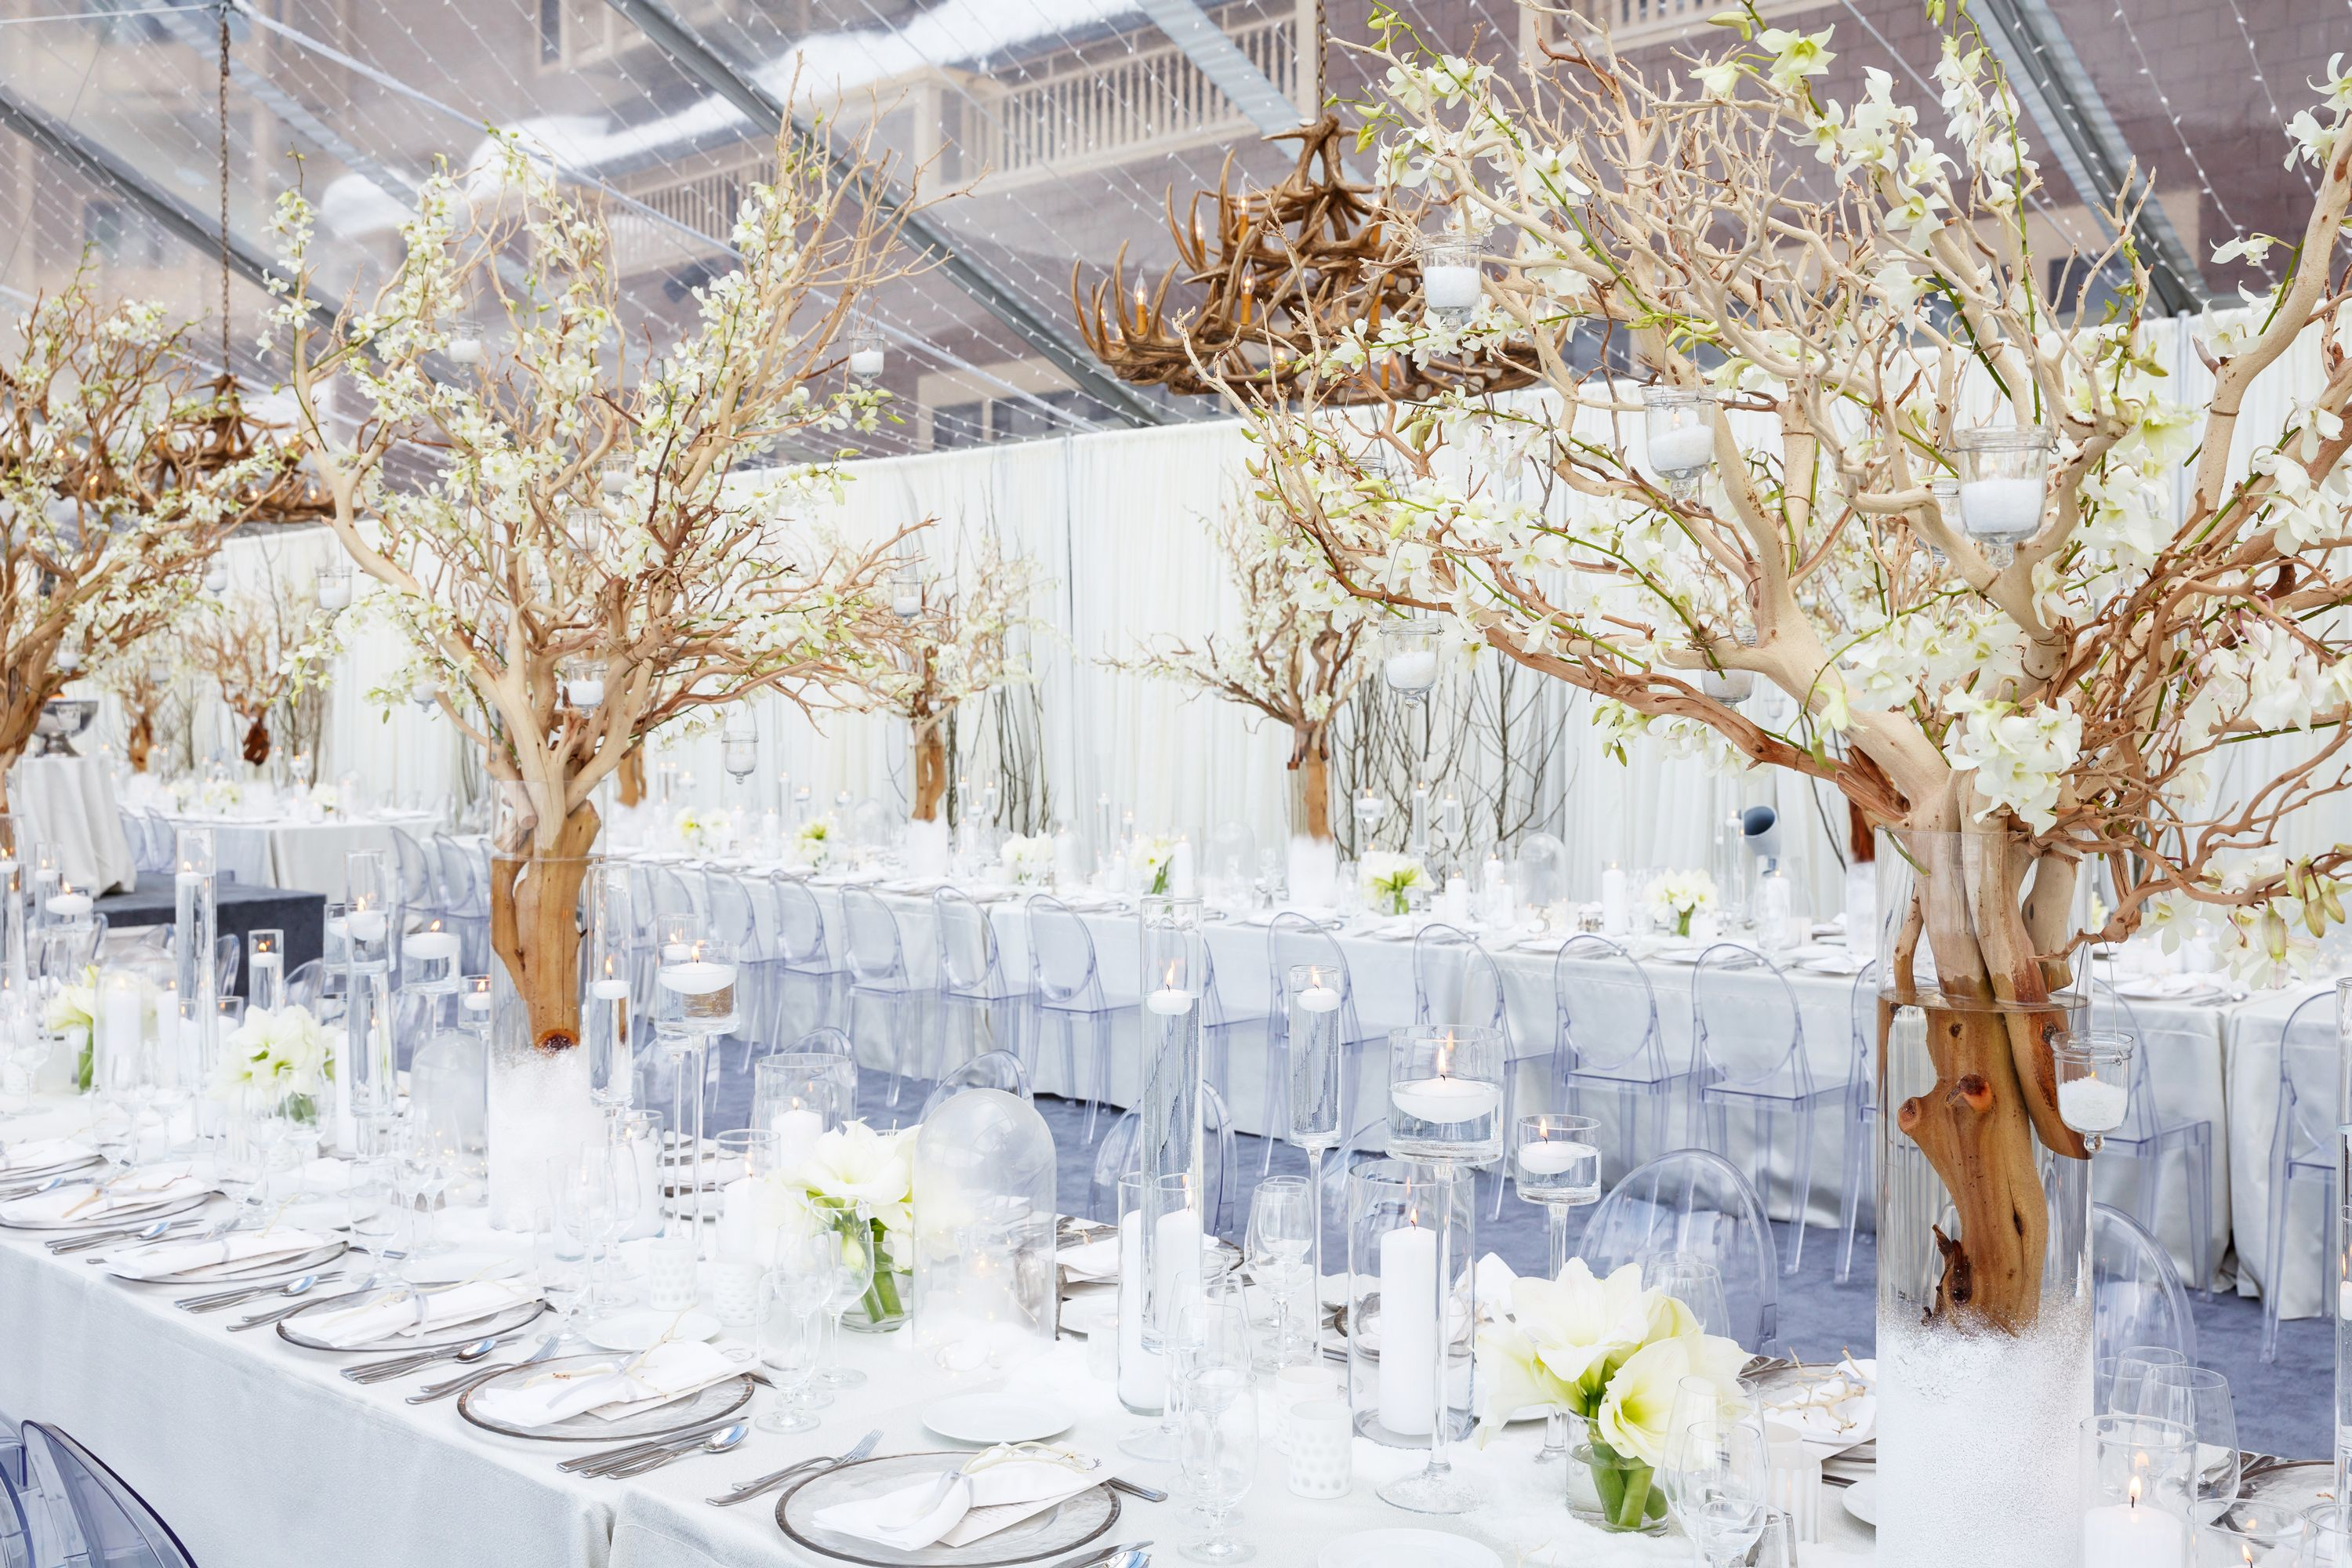 Wedding decor all white  How to Pull Off an AllWhite Wedding  Weddings Winter weddings and